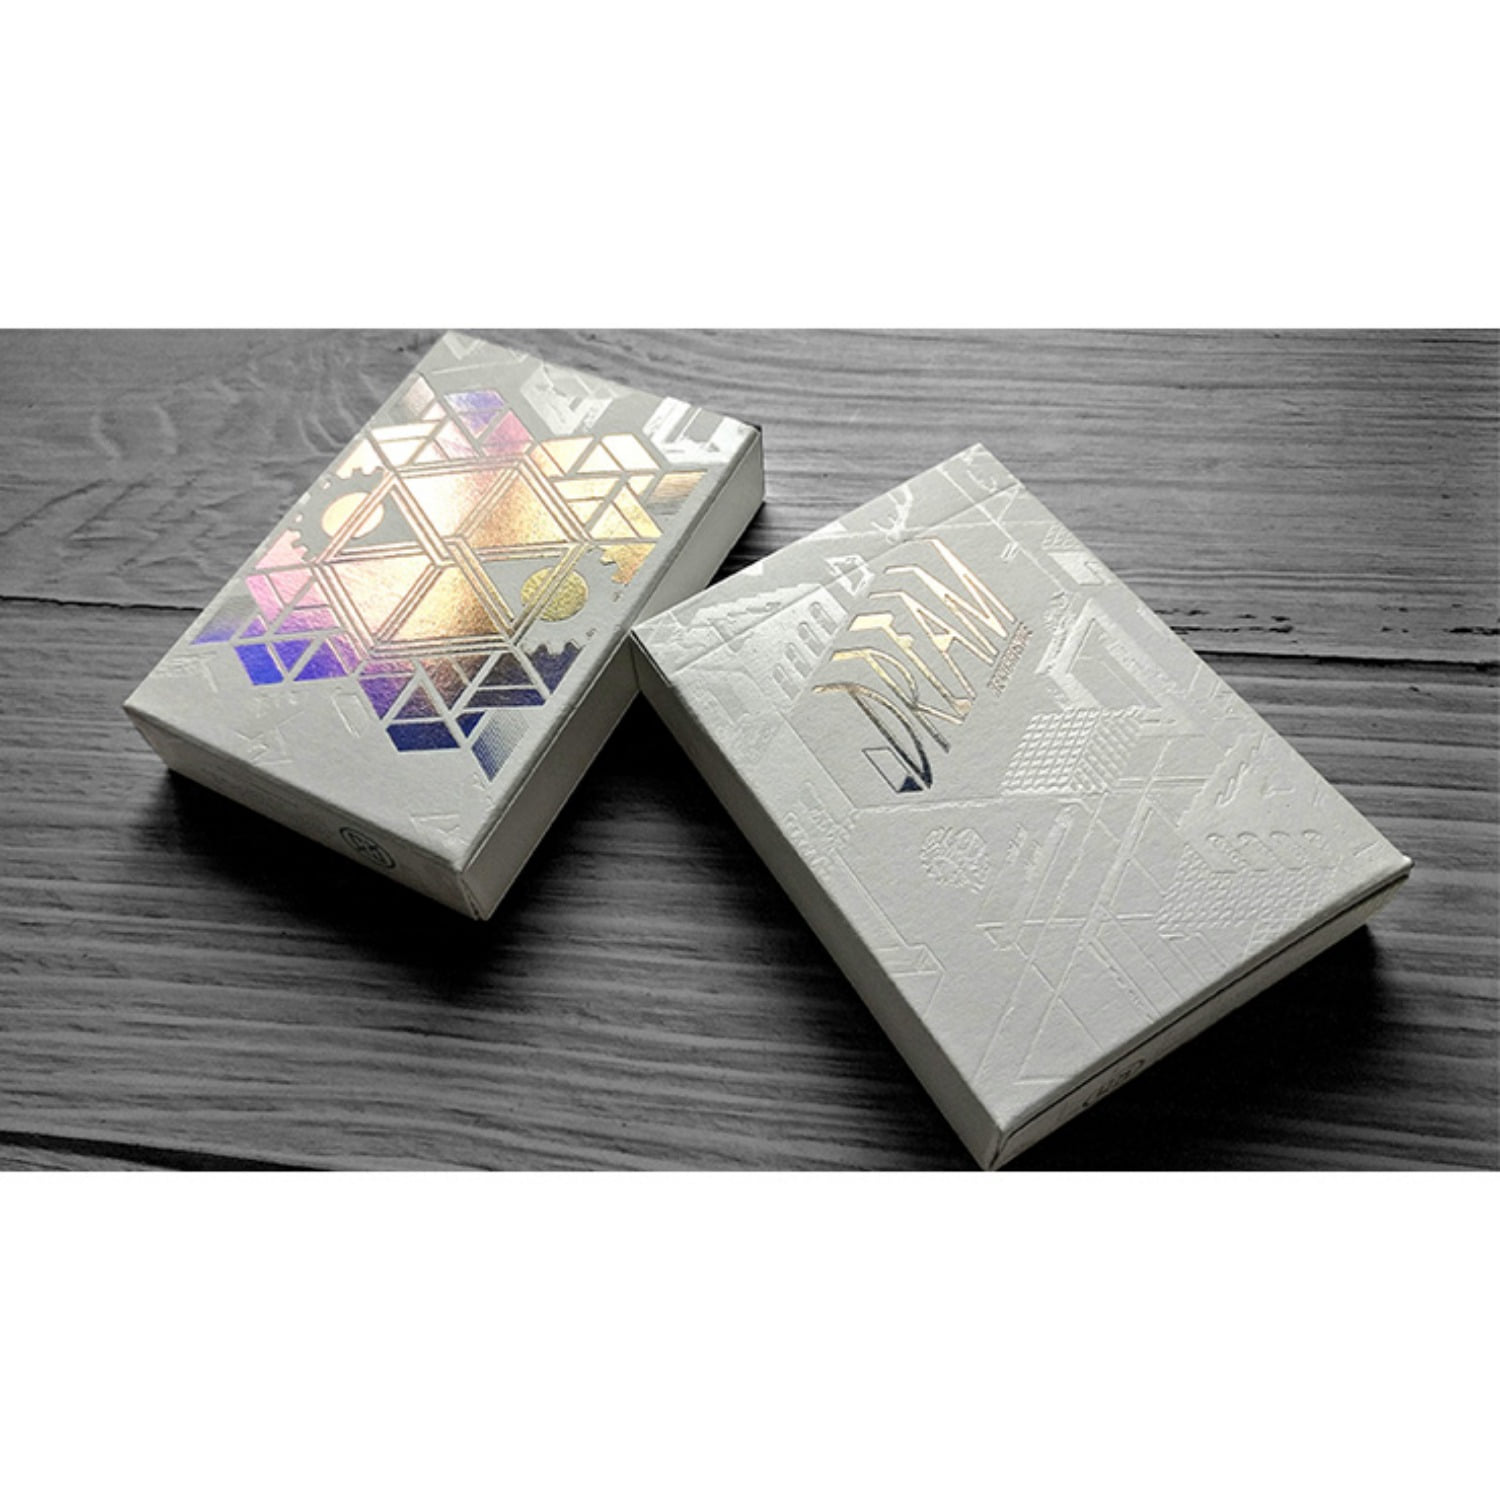 [드림 리커런스 리버리]Dream Recurrence Reverie Playing Cards (Deluxe Edition)